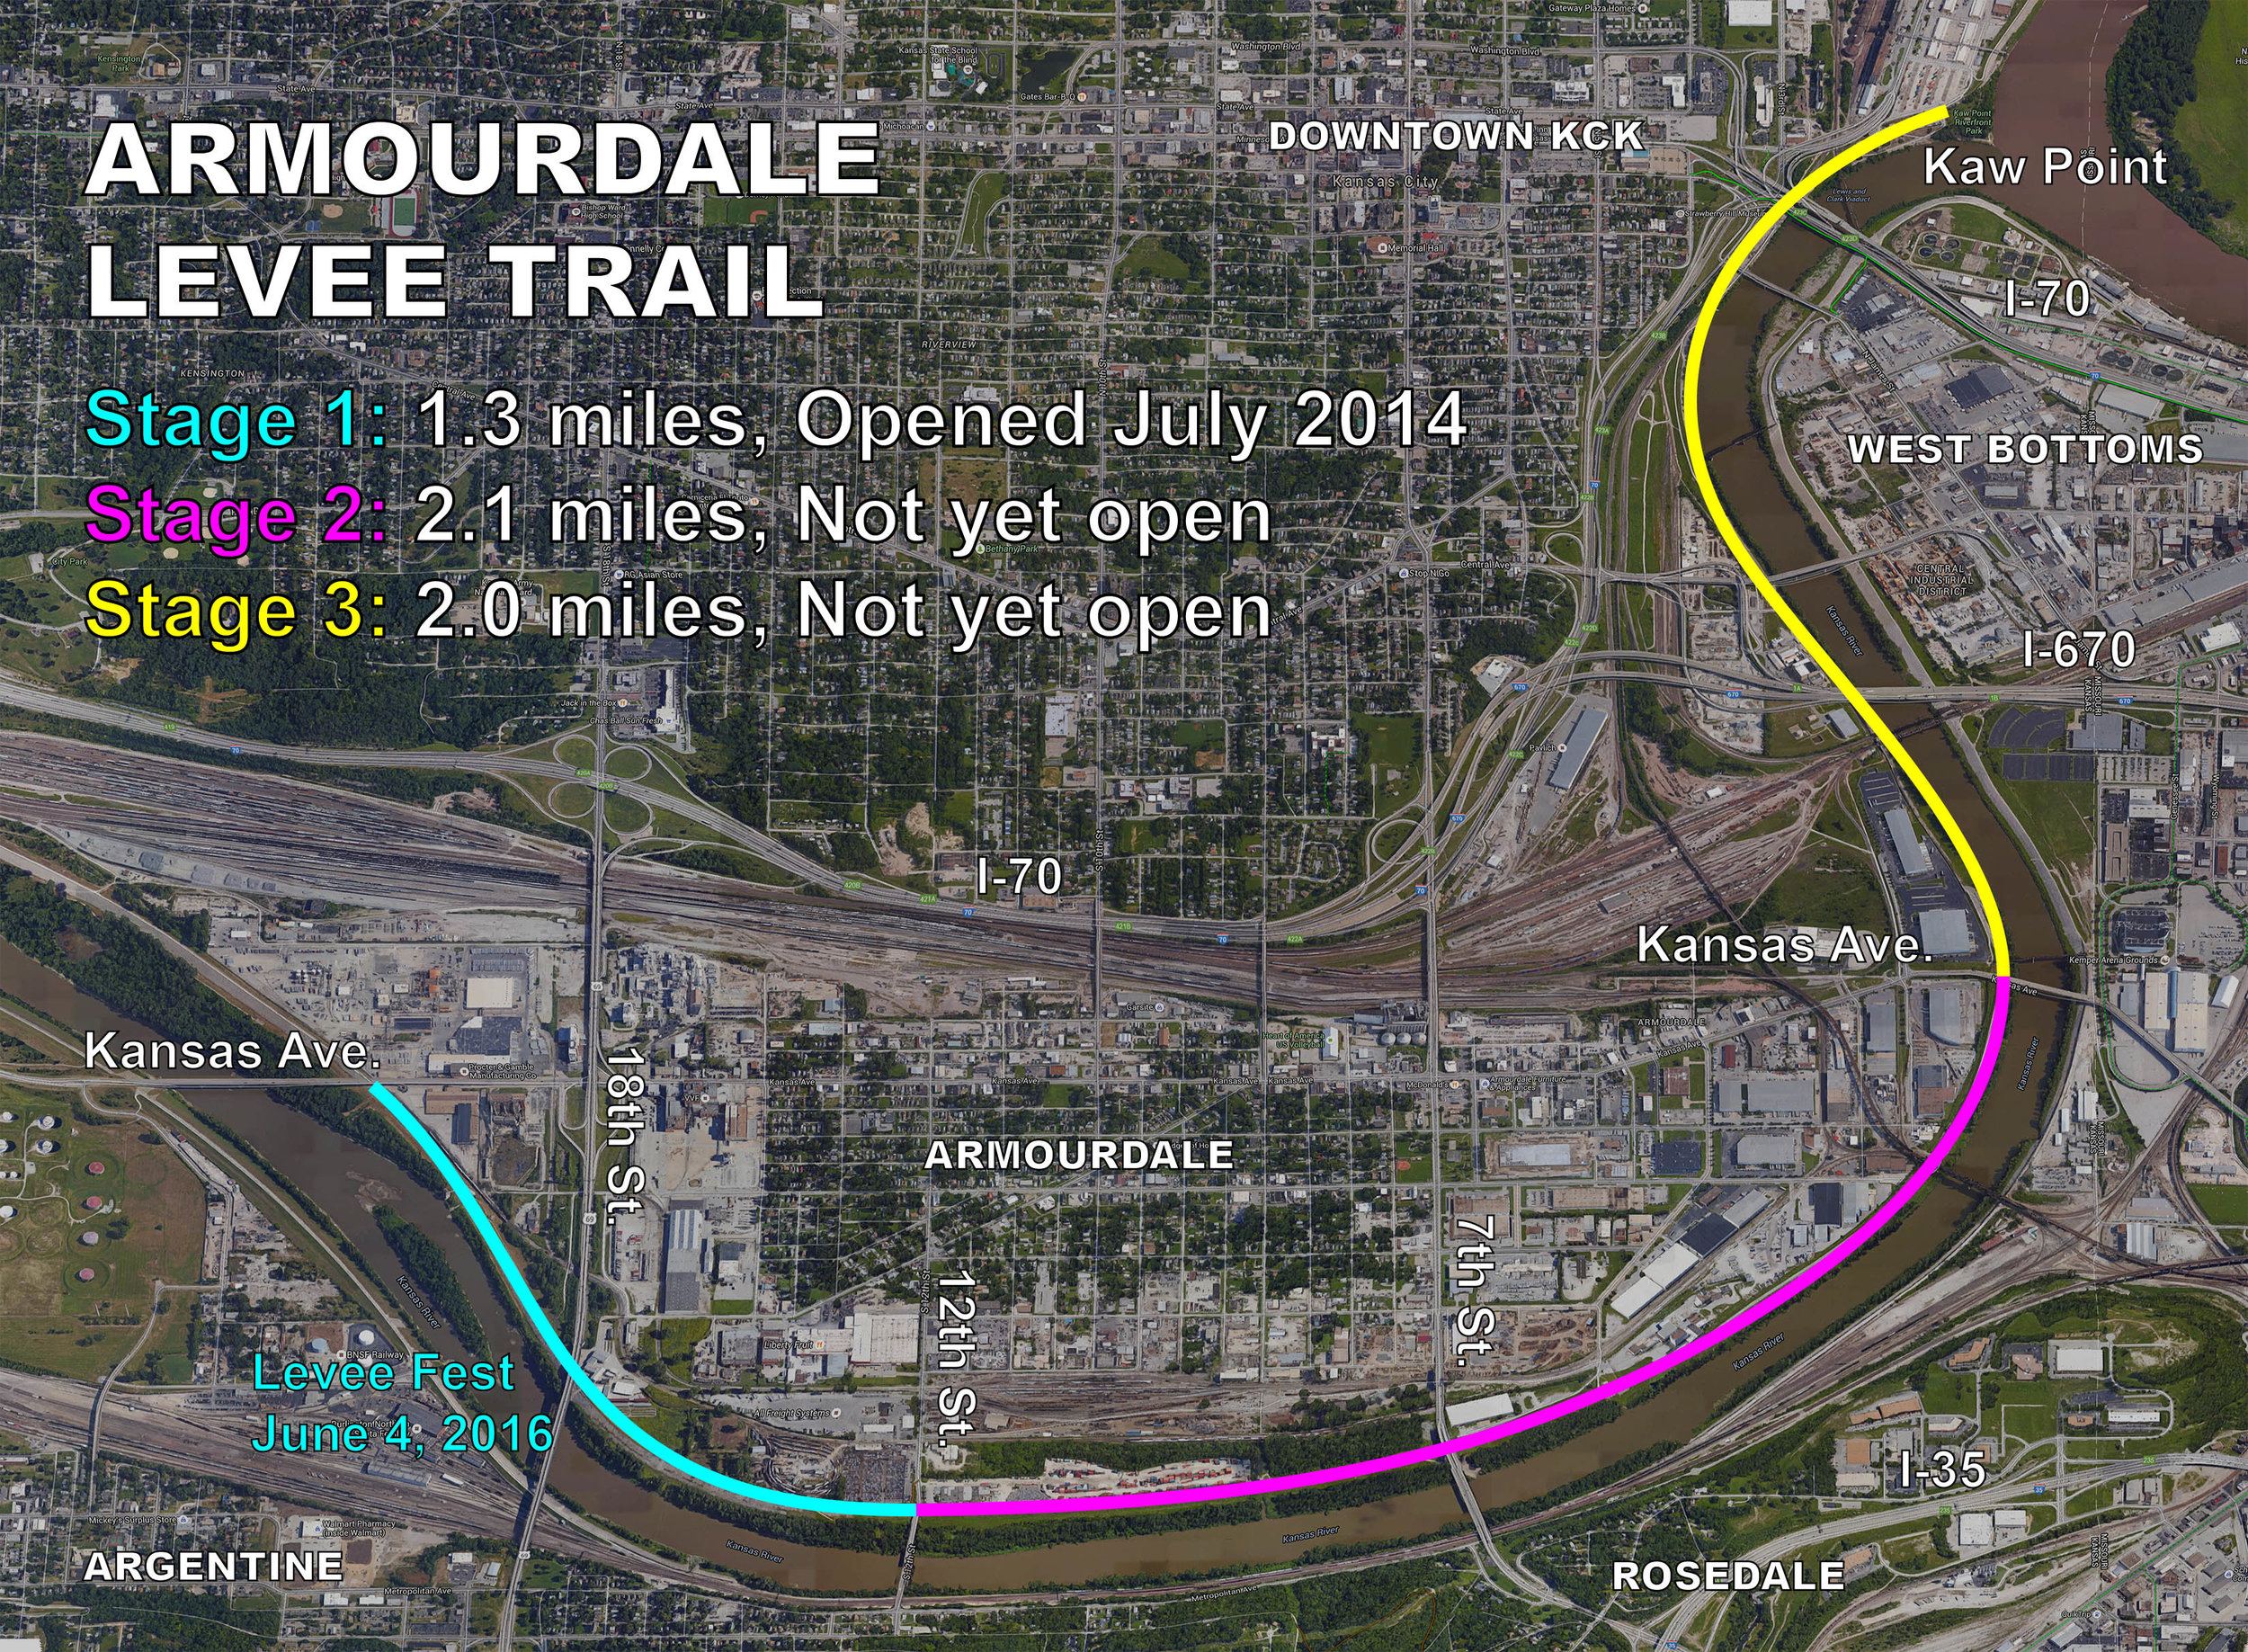 Armourdale Levee Trail Overall